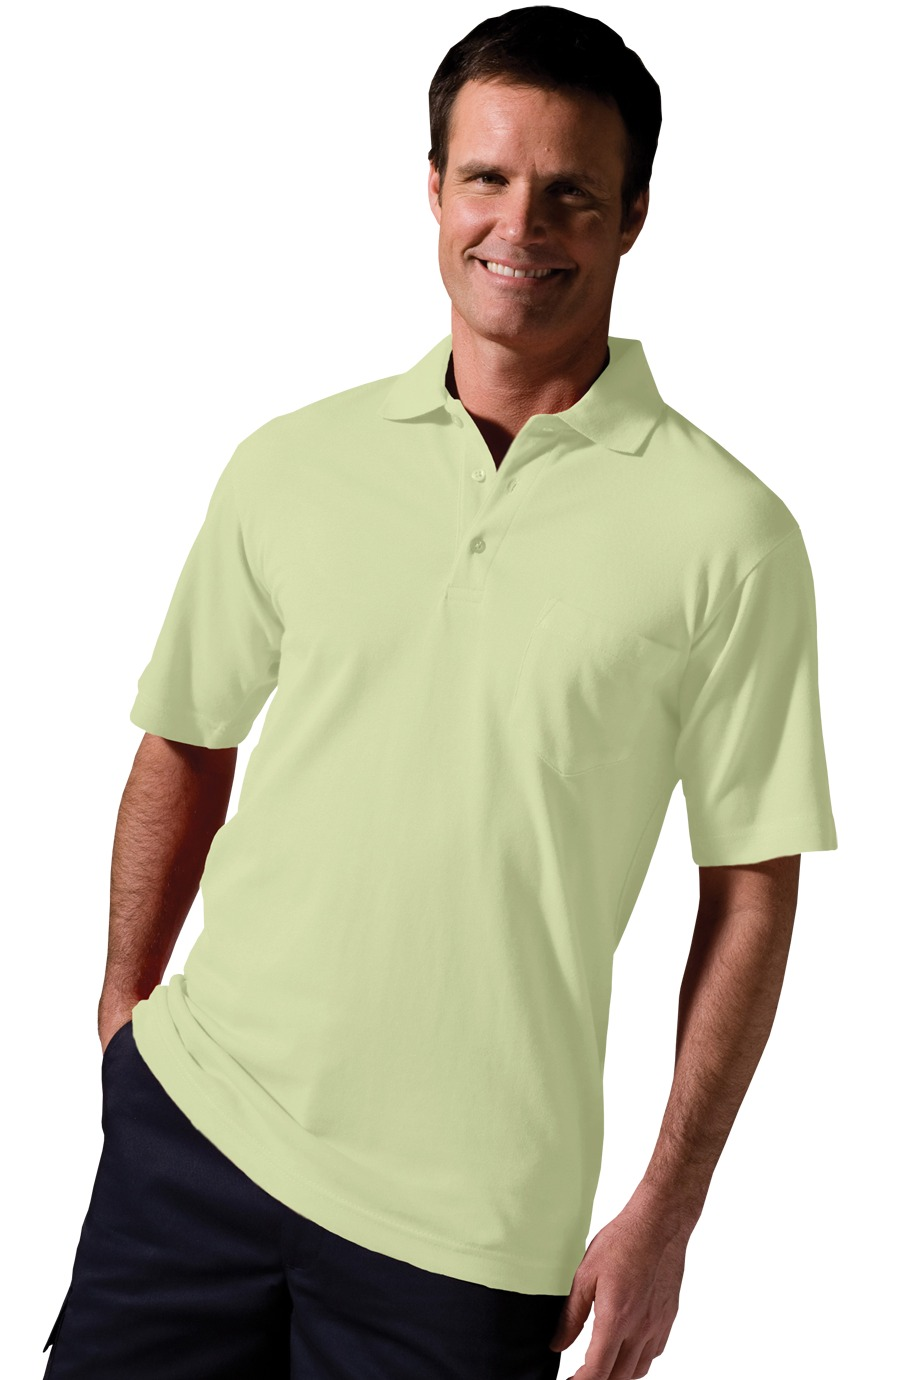 Edwards Garment 1535 - Soft Touch Short Sleeve All Cotton ...